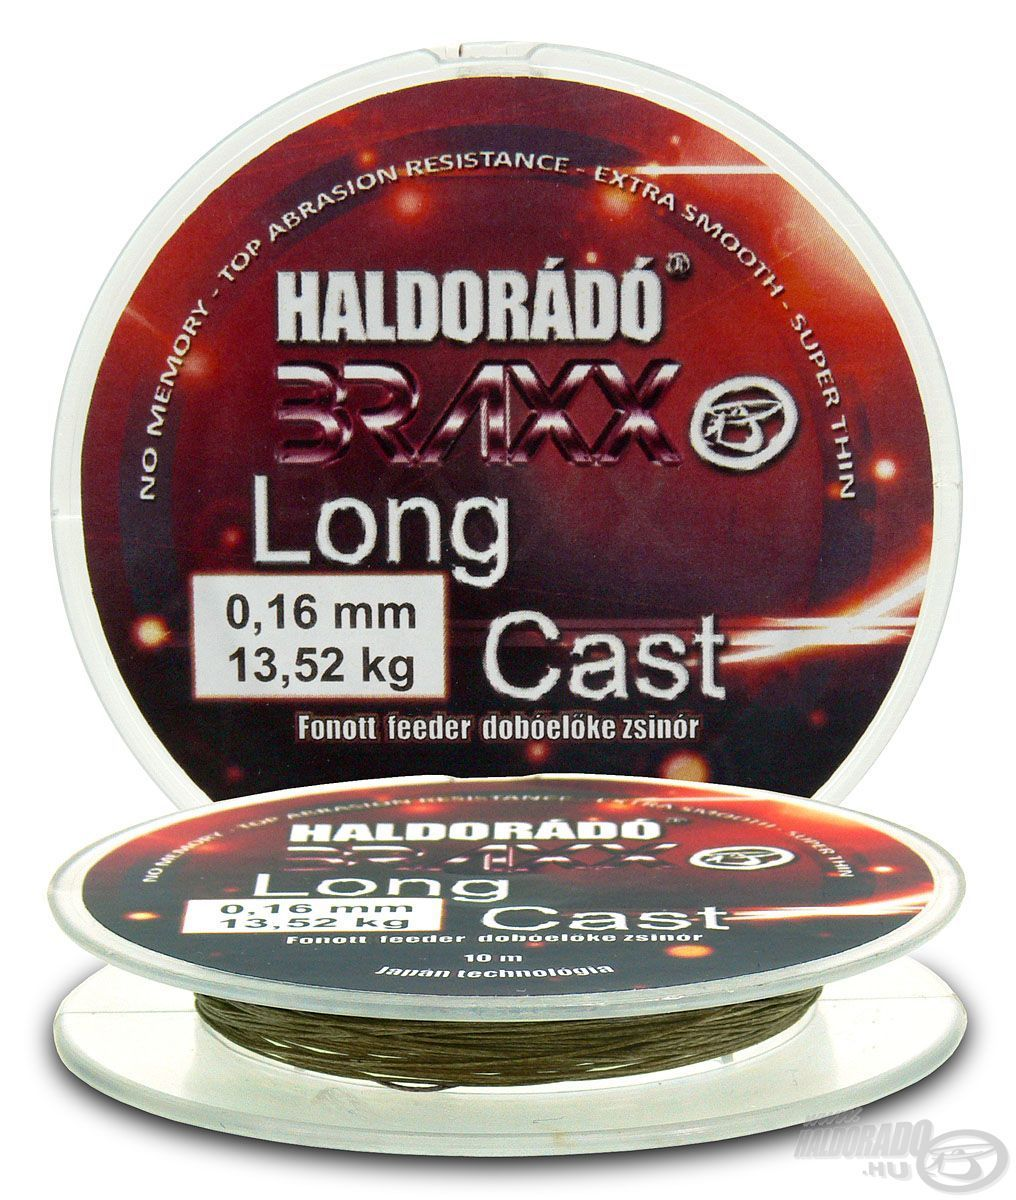 HALDOR�D�, Braxx, Long, Cast, 1490Ft